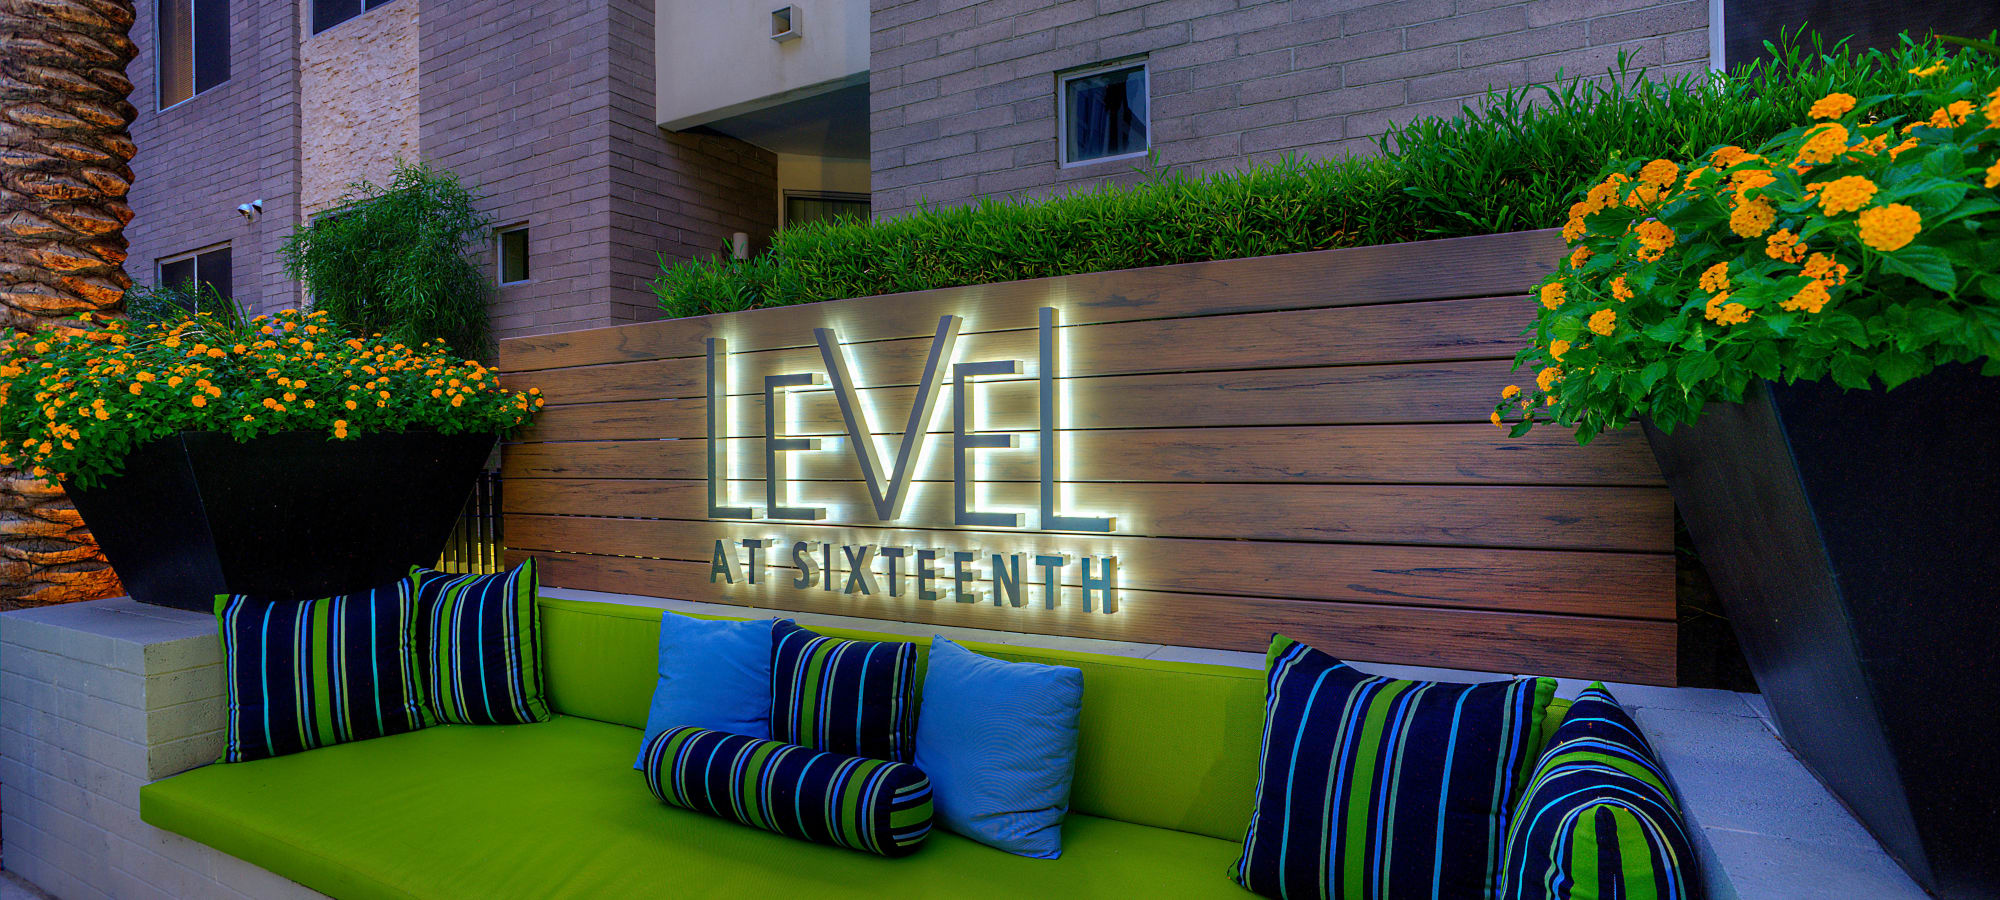 Our sign lit up in the evening at Level at Sixteenth in Phoenix, Arizona